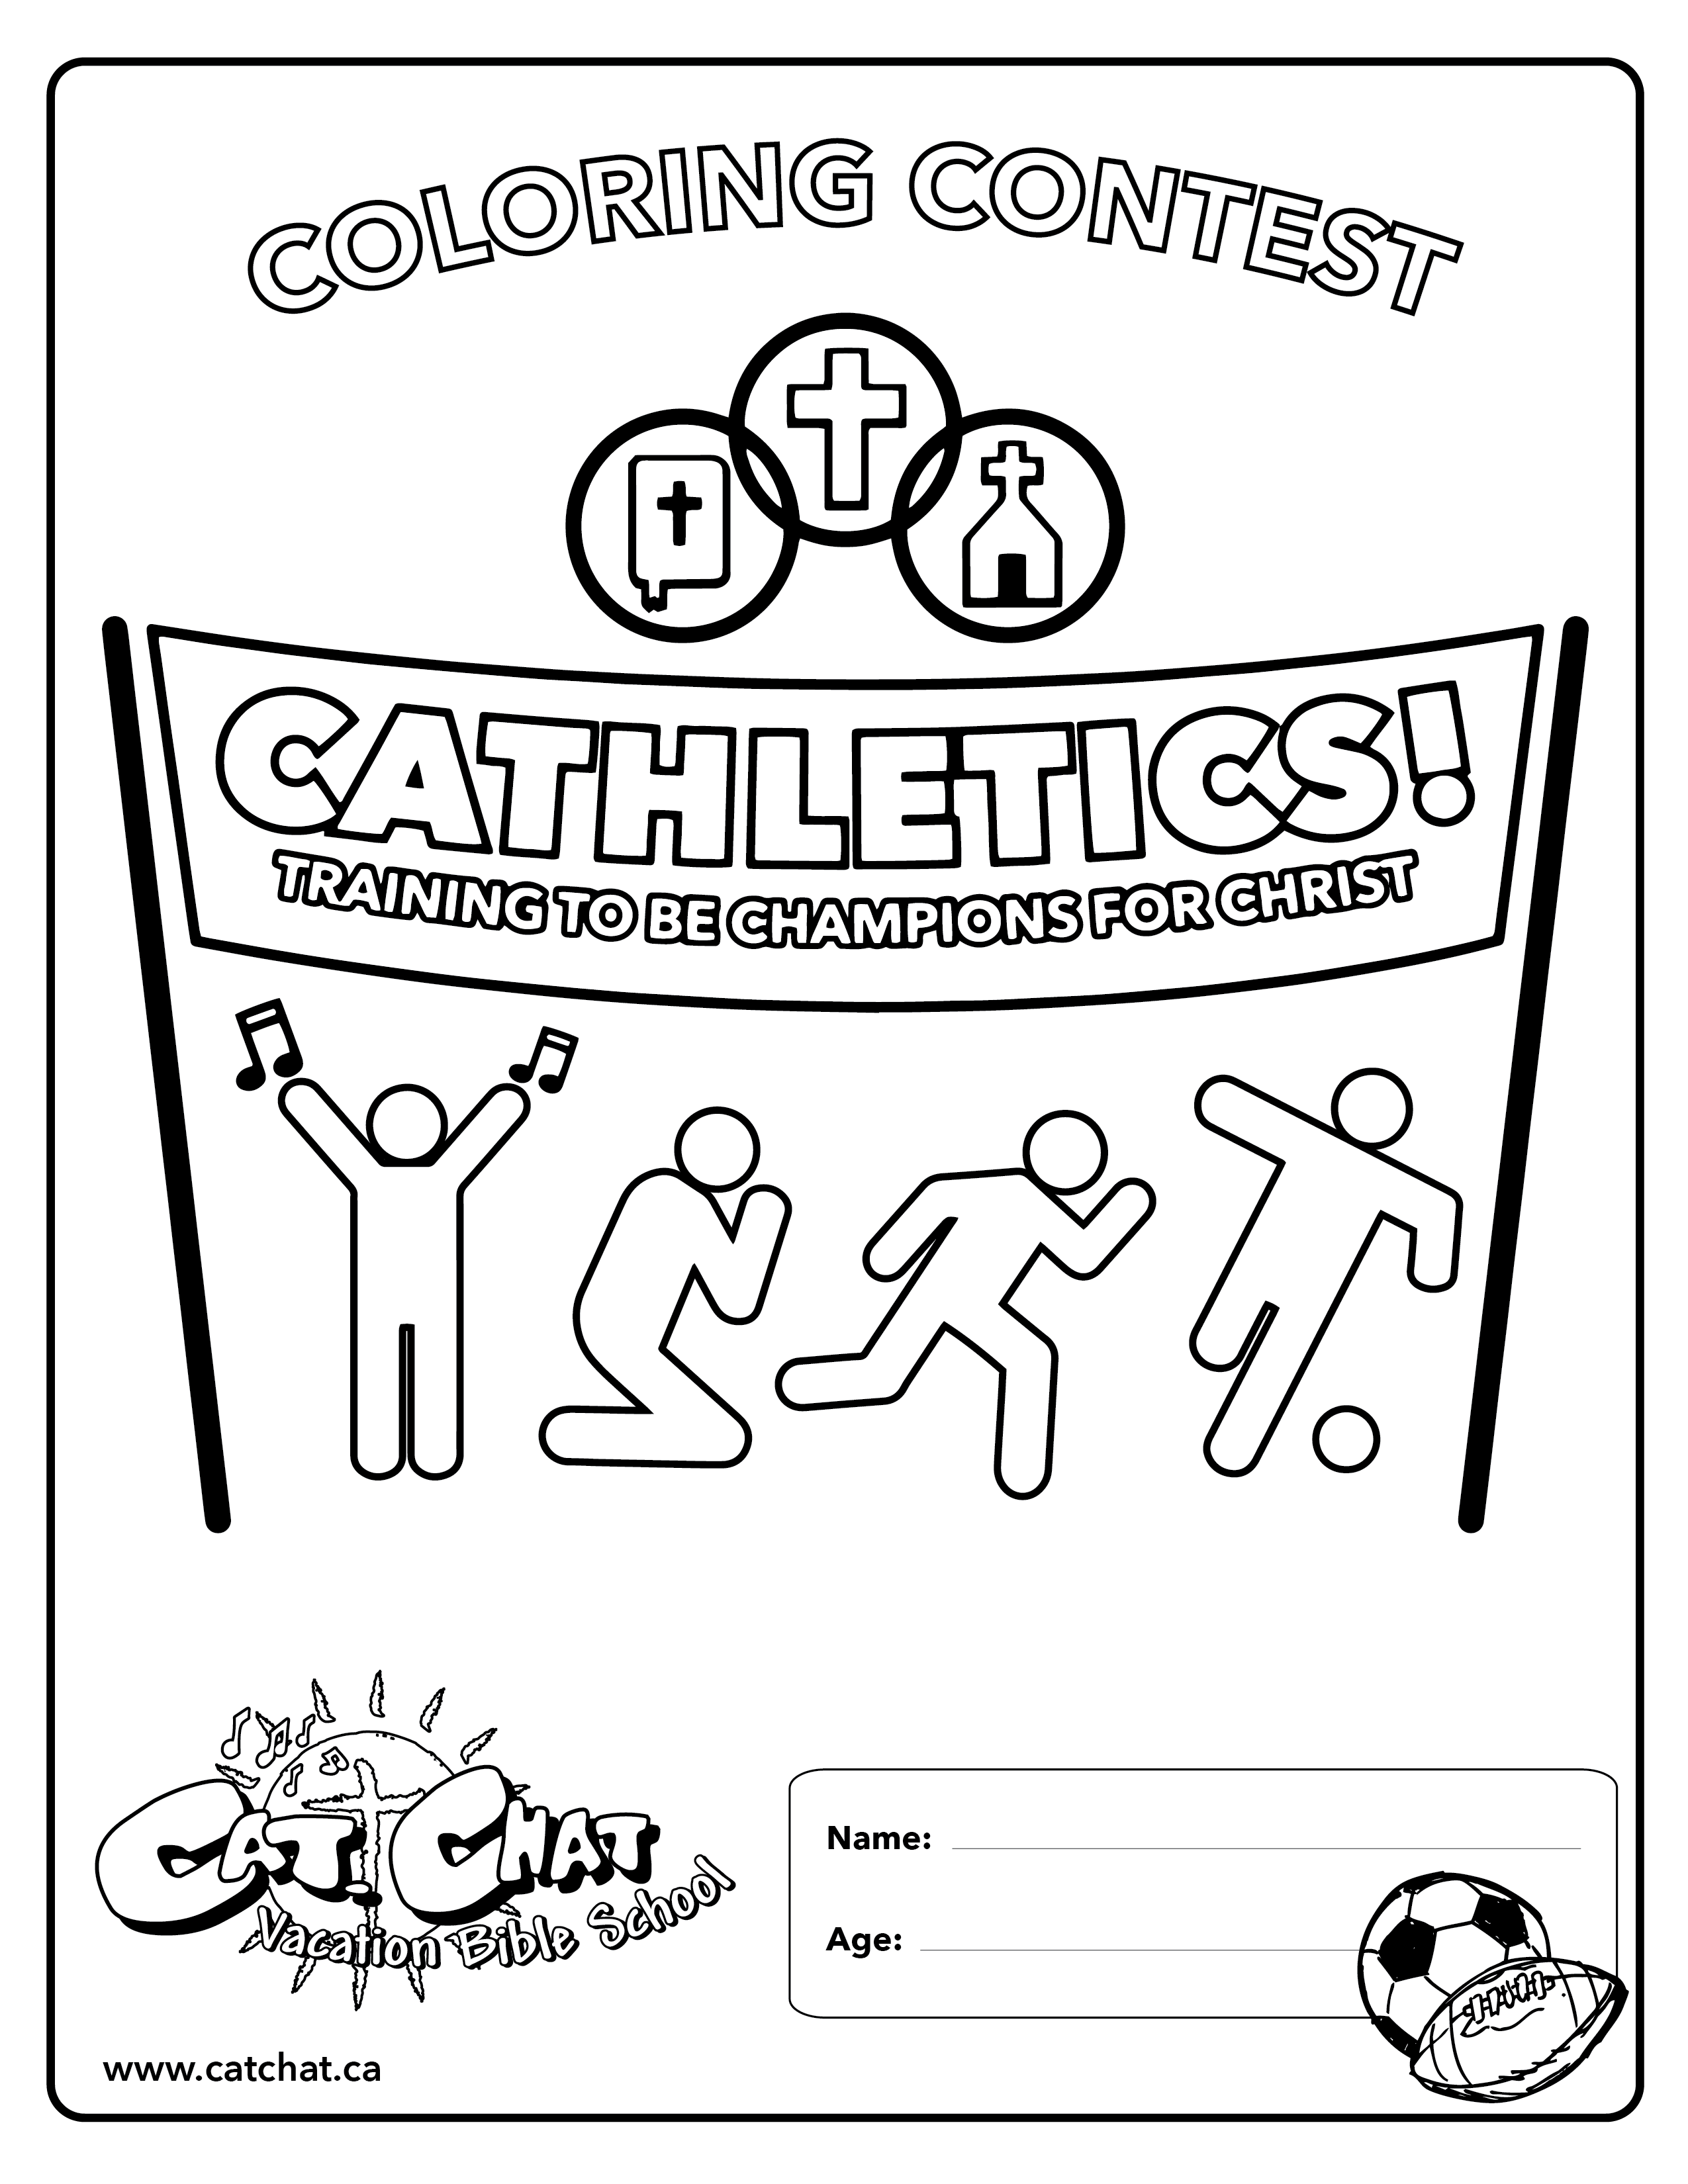 Cathletics VBS Coloring Contest 01